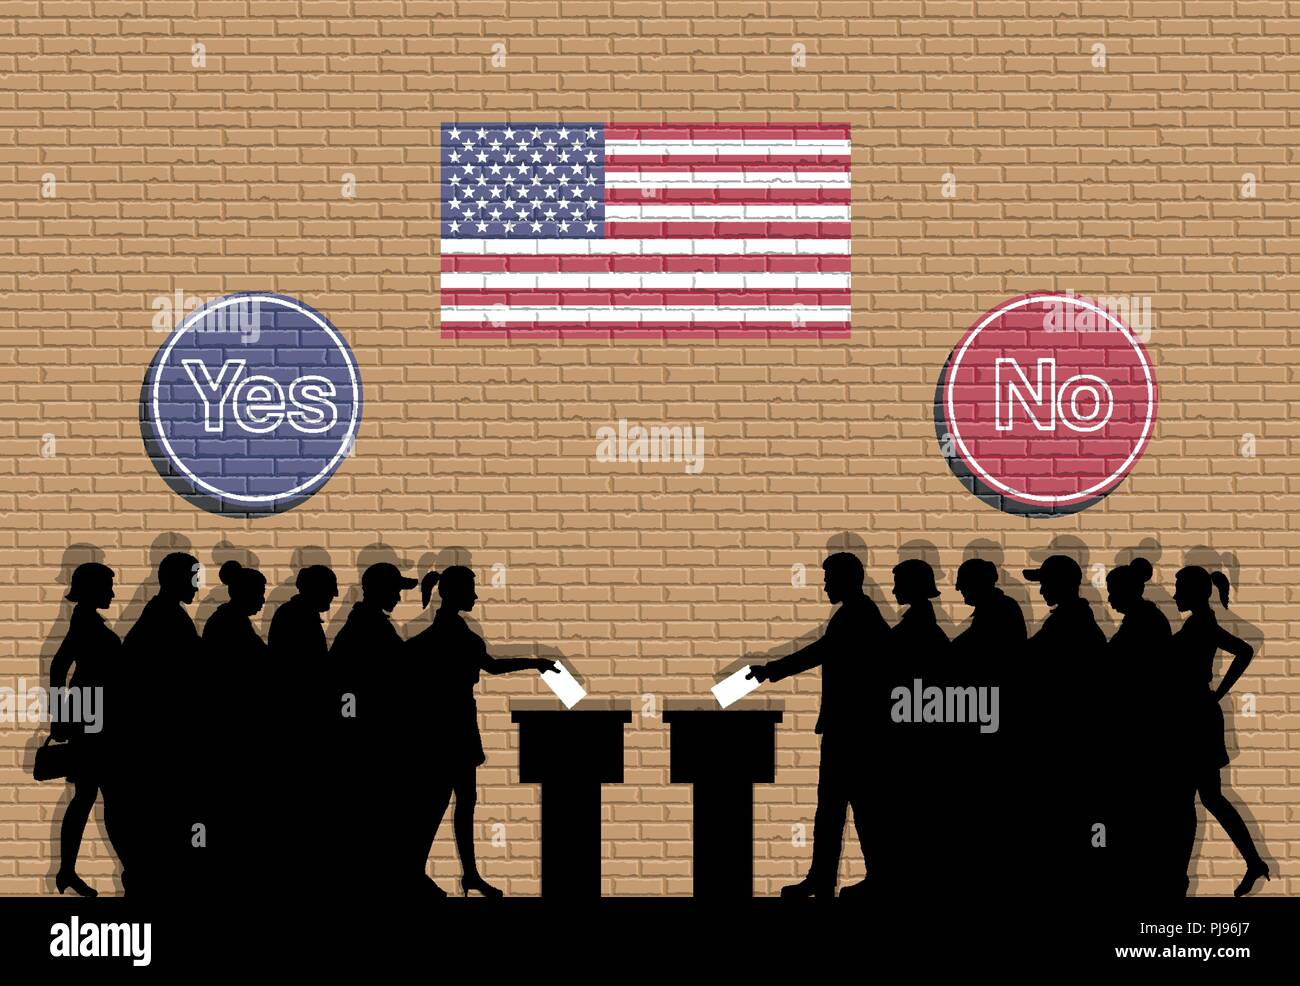 American voters crowd silhouette in USA election with yes and no signs graffiti. All the silhouette objects, icons and background are in different lay - Stock Vector